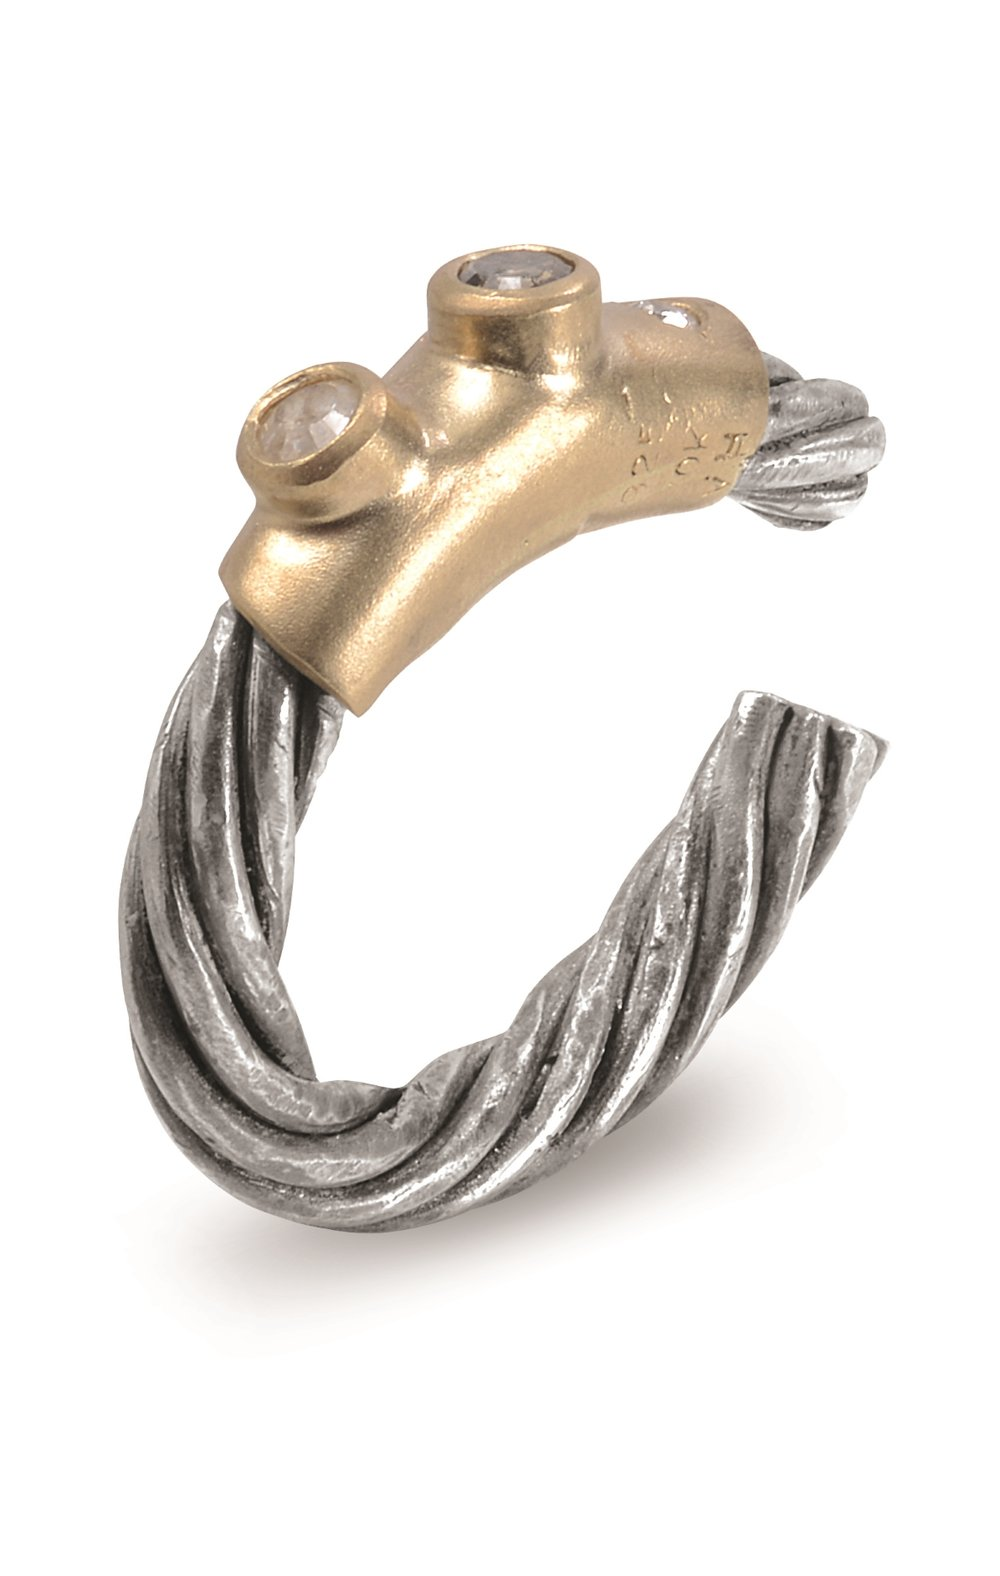 CABLE RING | Certified adjustable cable ring with buffed, oxidized, and twisted silver shank, with a sandblasted 10 karat yellow gold accent containing gypsy and bezel set round brilliant and rose-cut diamonds in white, yellow, and gray-brown.